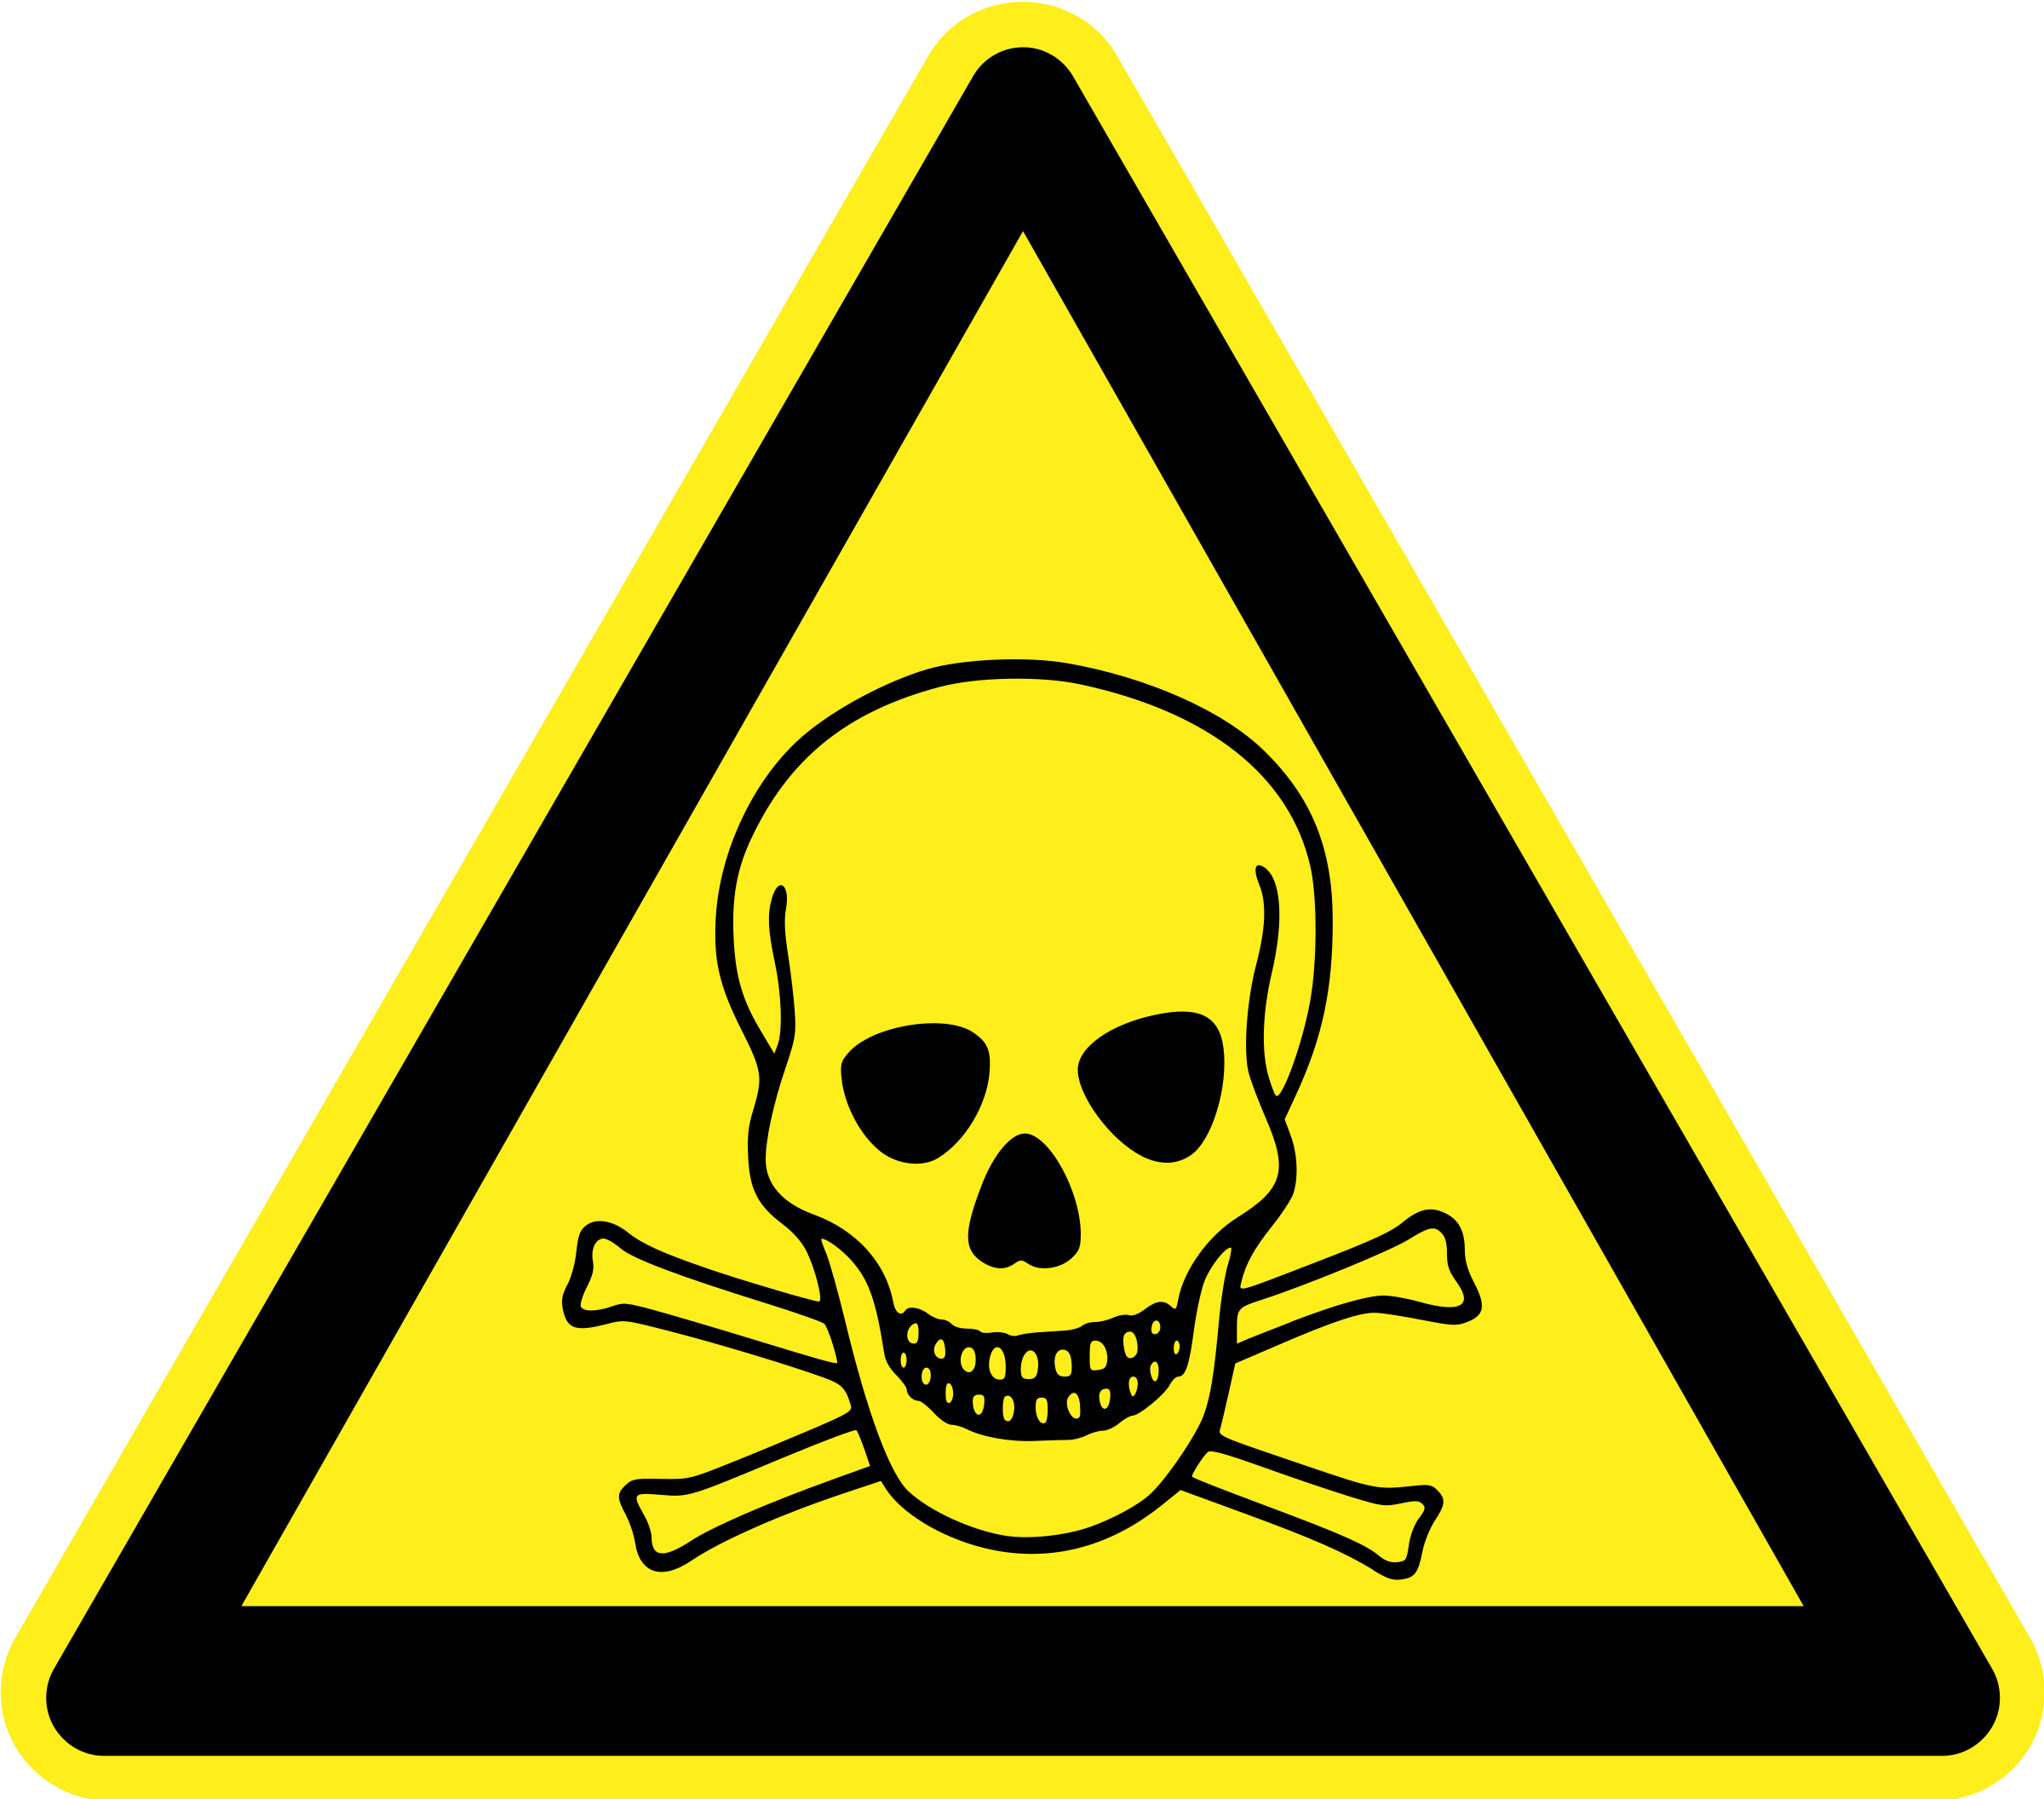 Toxic/Poison Warning Sign by h0us3s